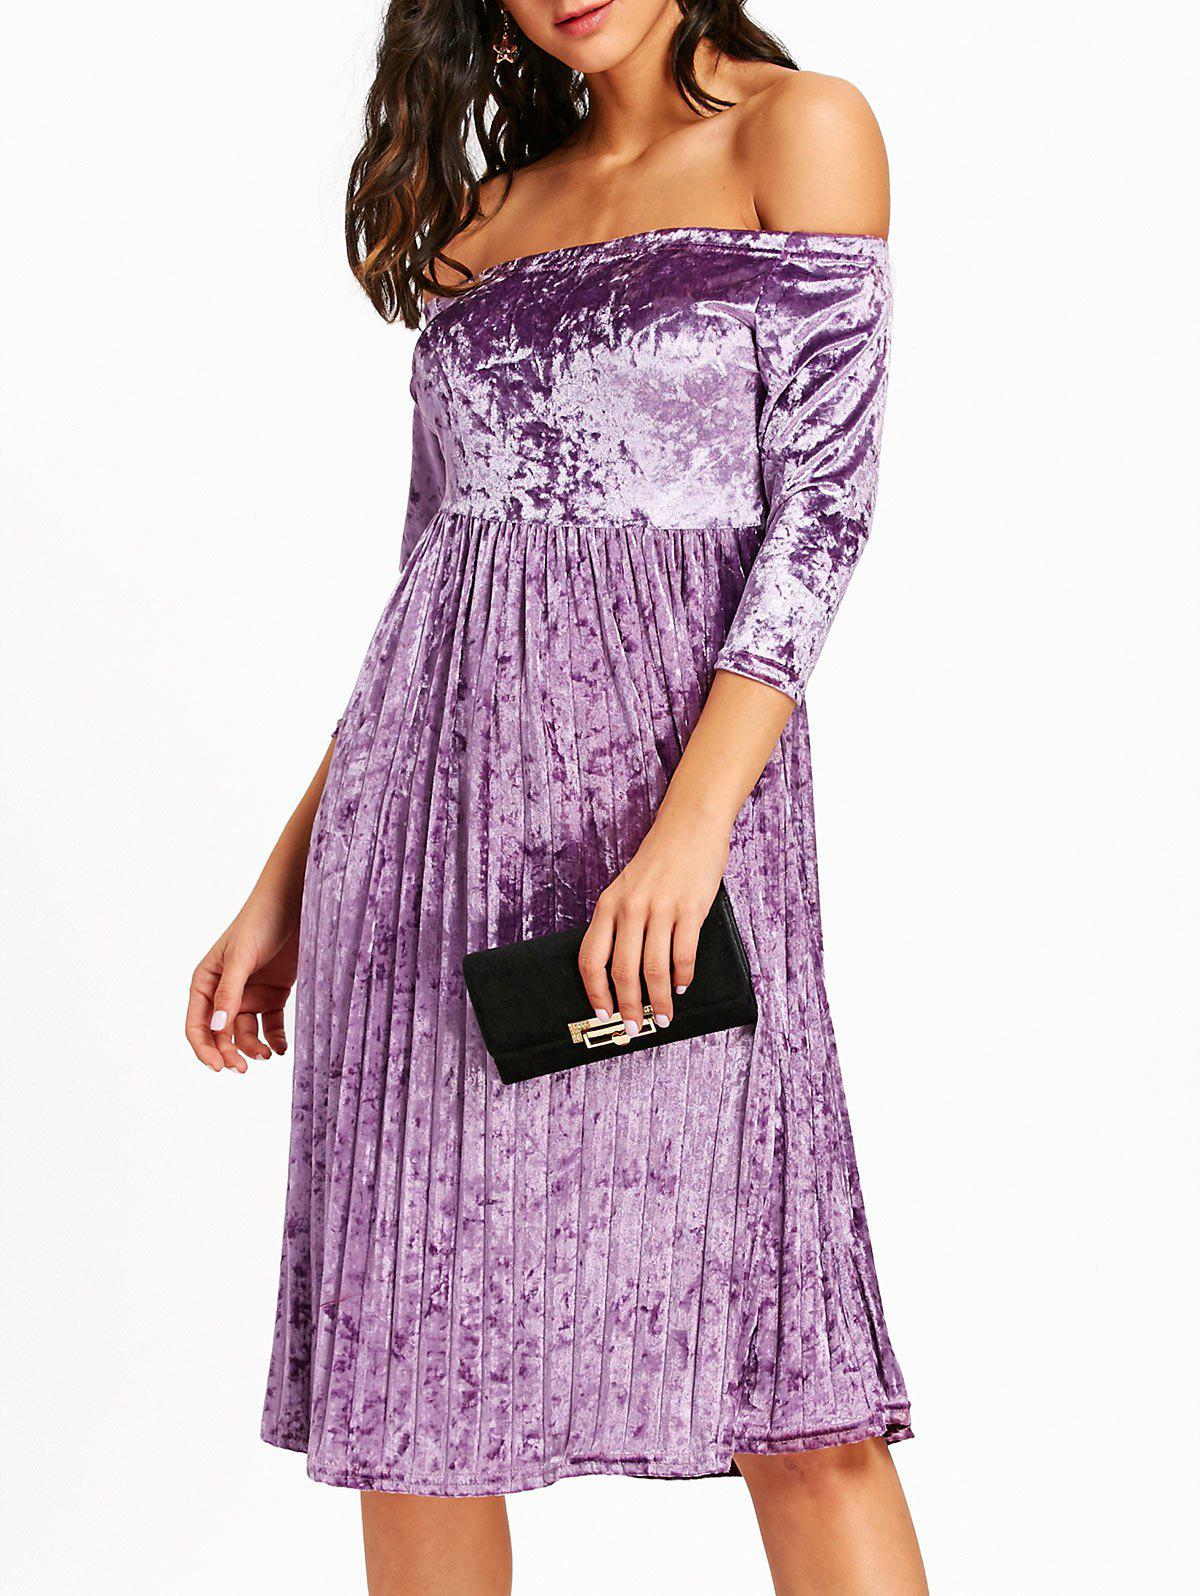 Off The Shoulder Velvet Pleated Dress - LIGHT PURPLE S